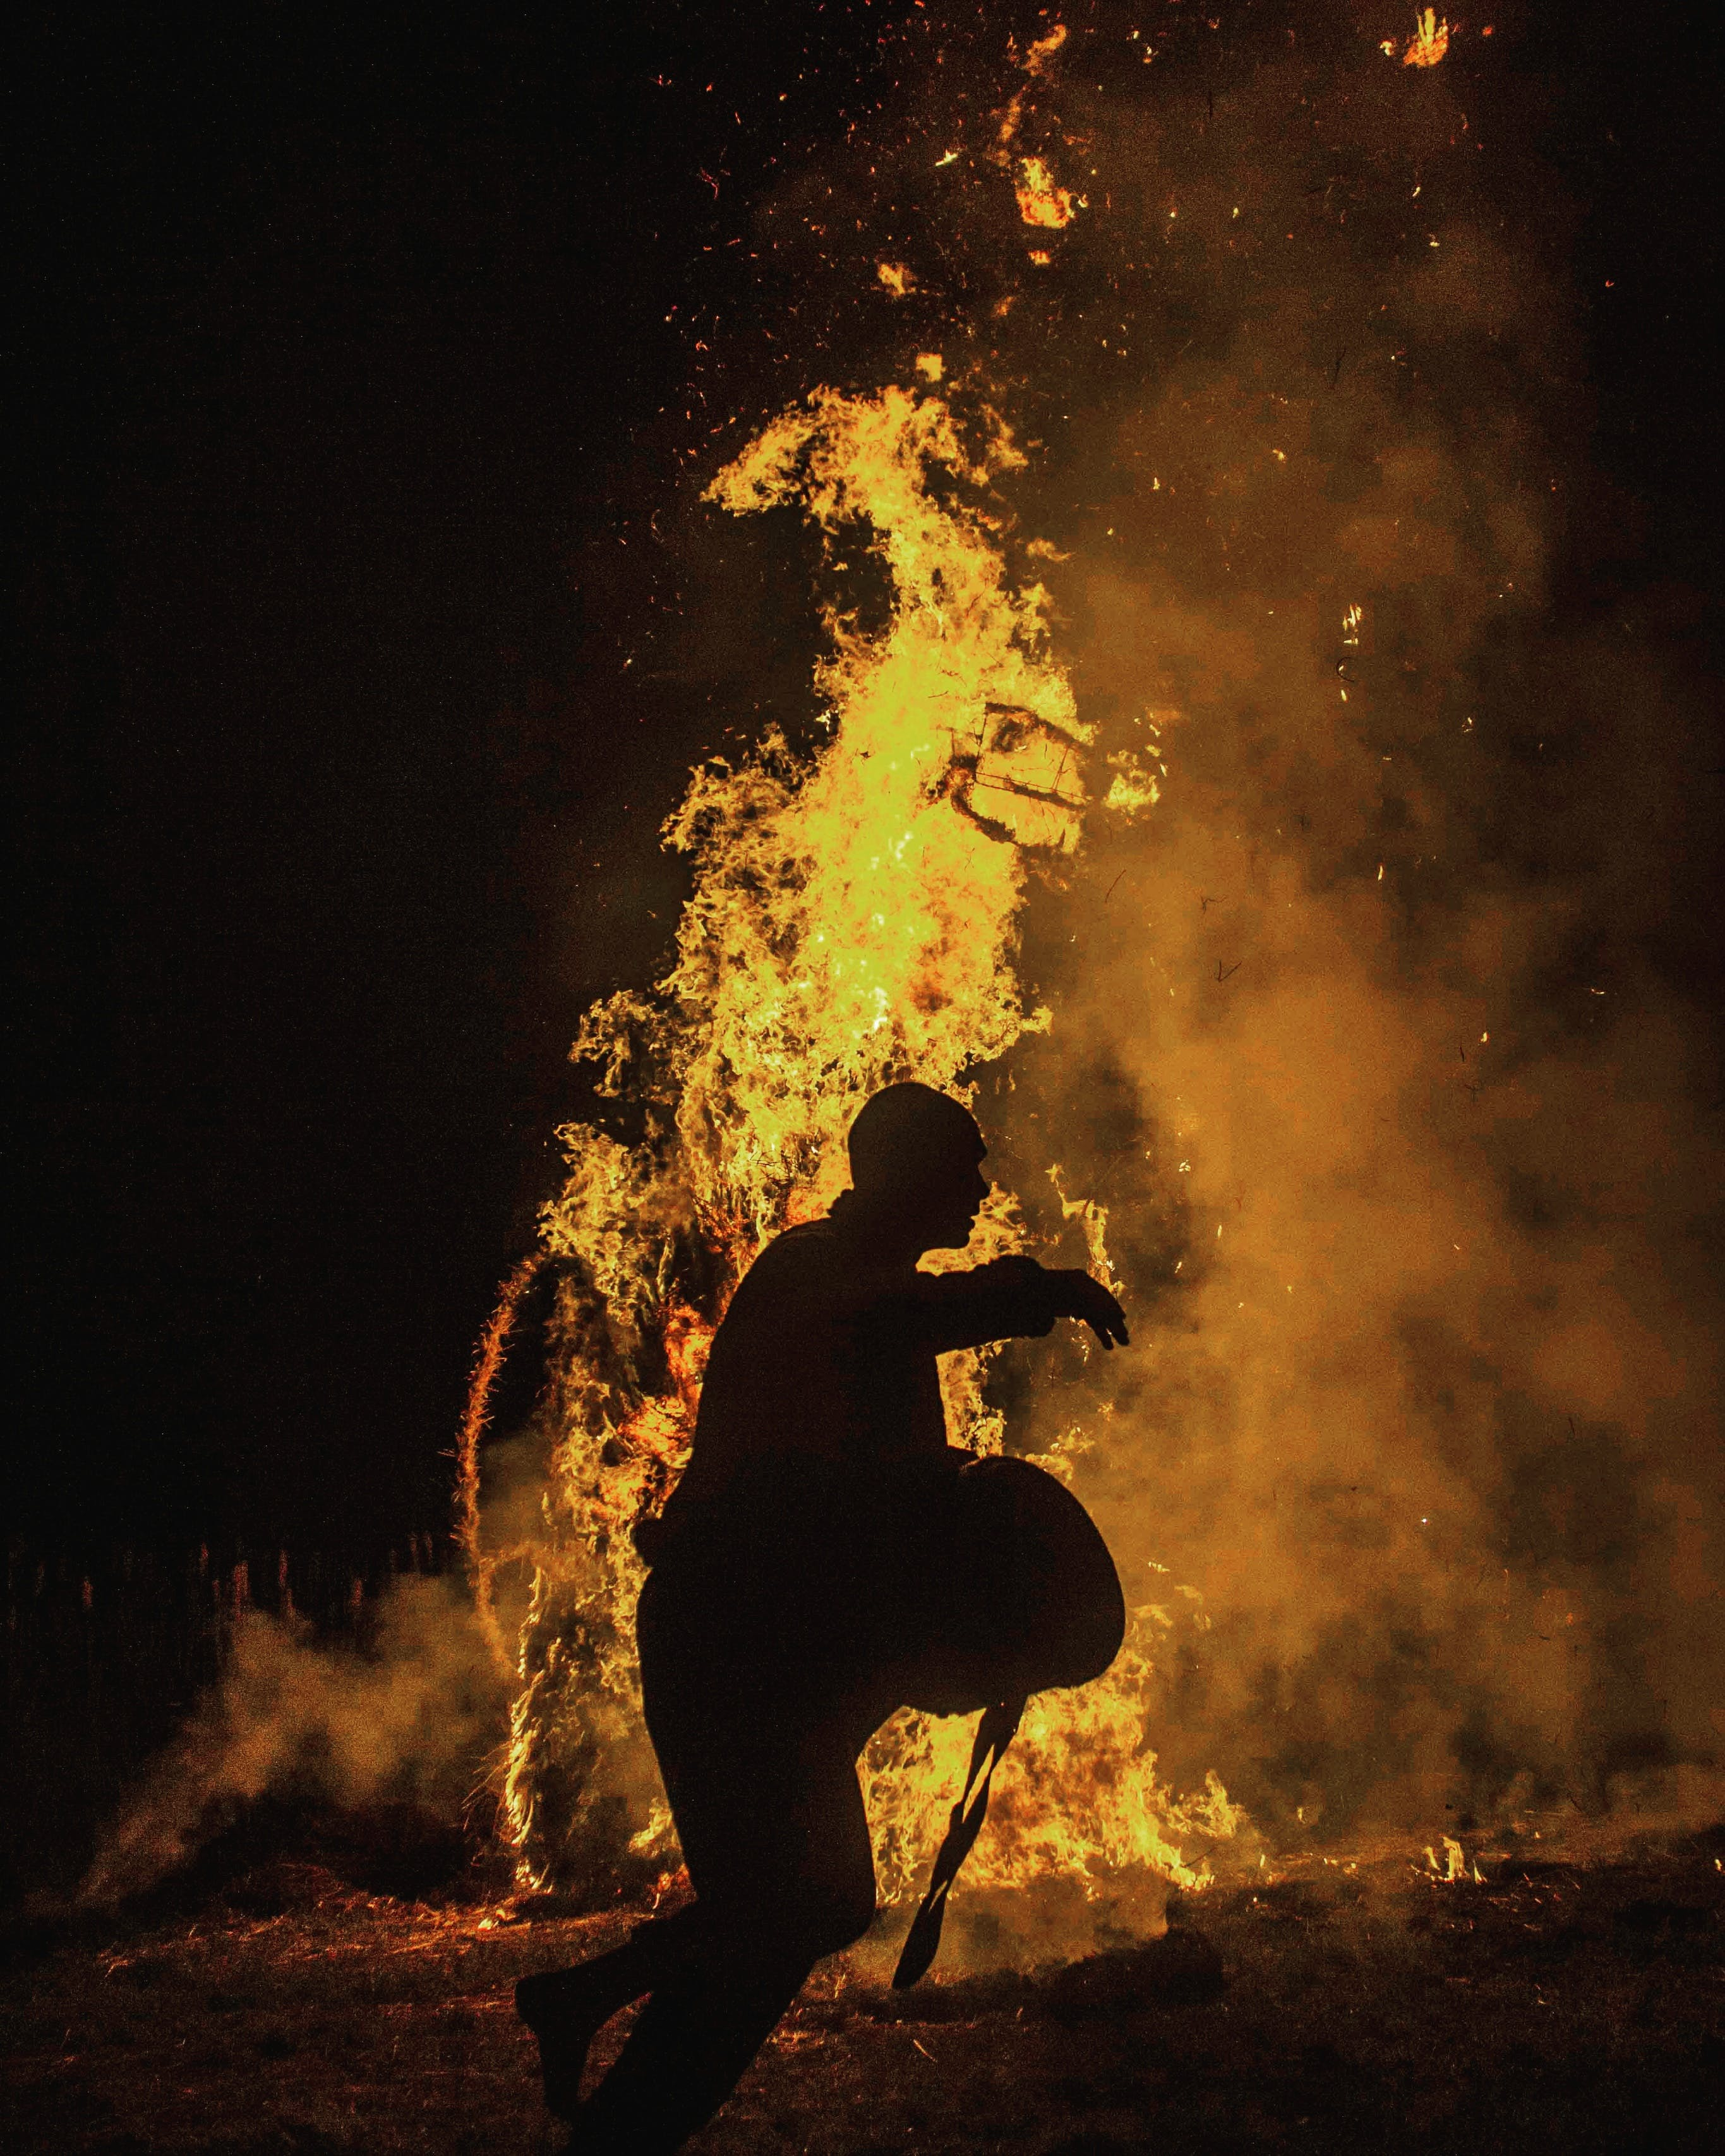 Person Silhouette Near the Fire